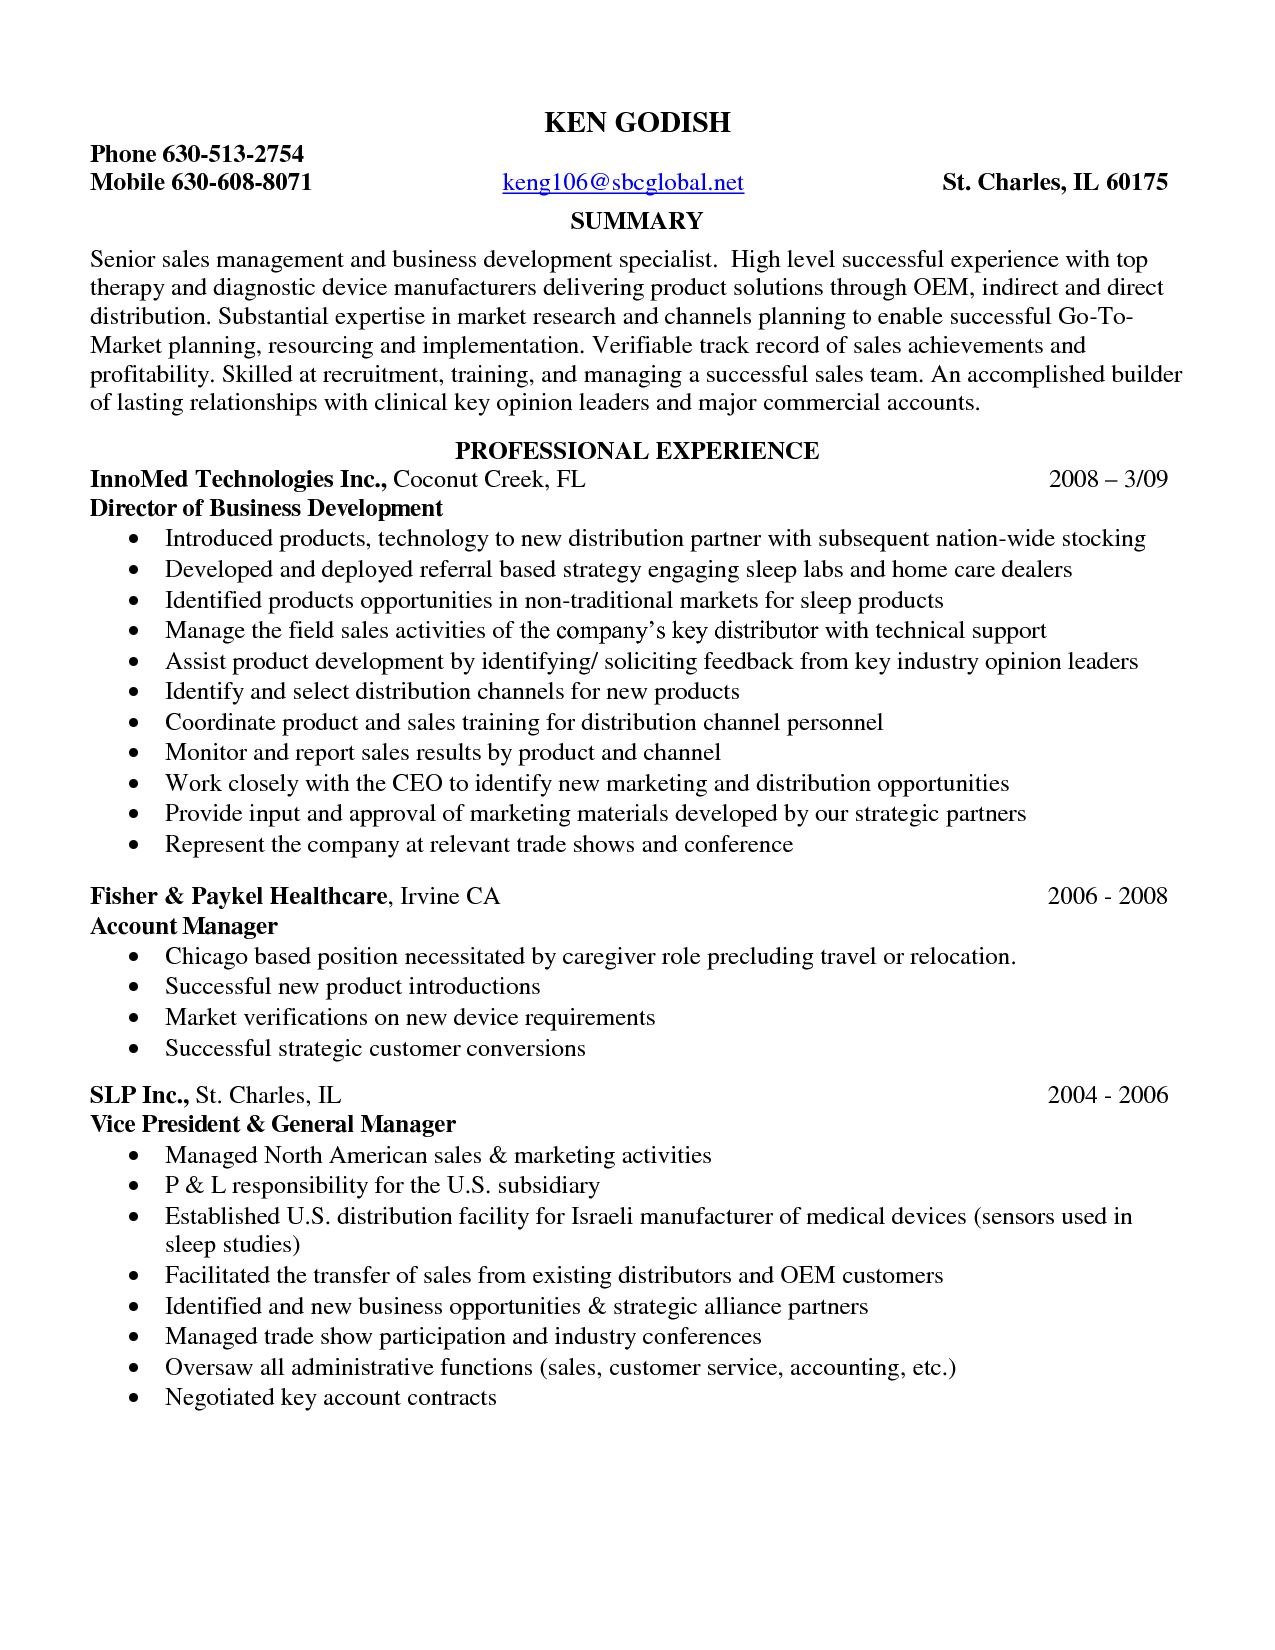 sample resume entry level pharmaceutical sales sample resume entry level pharmaceutical sales entry level pharmaceutical - Pharmaceutical Sales Resume Example